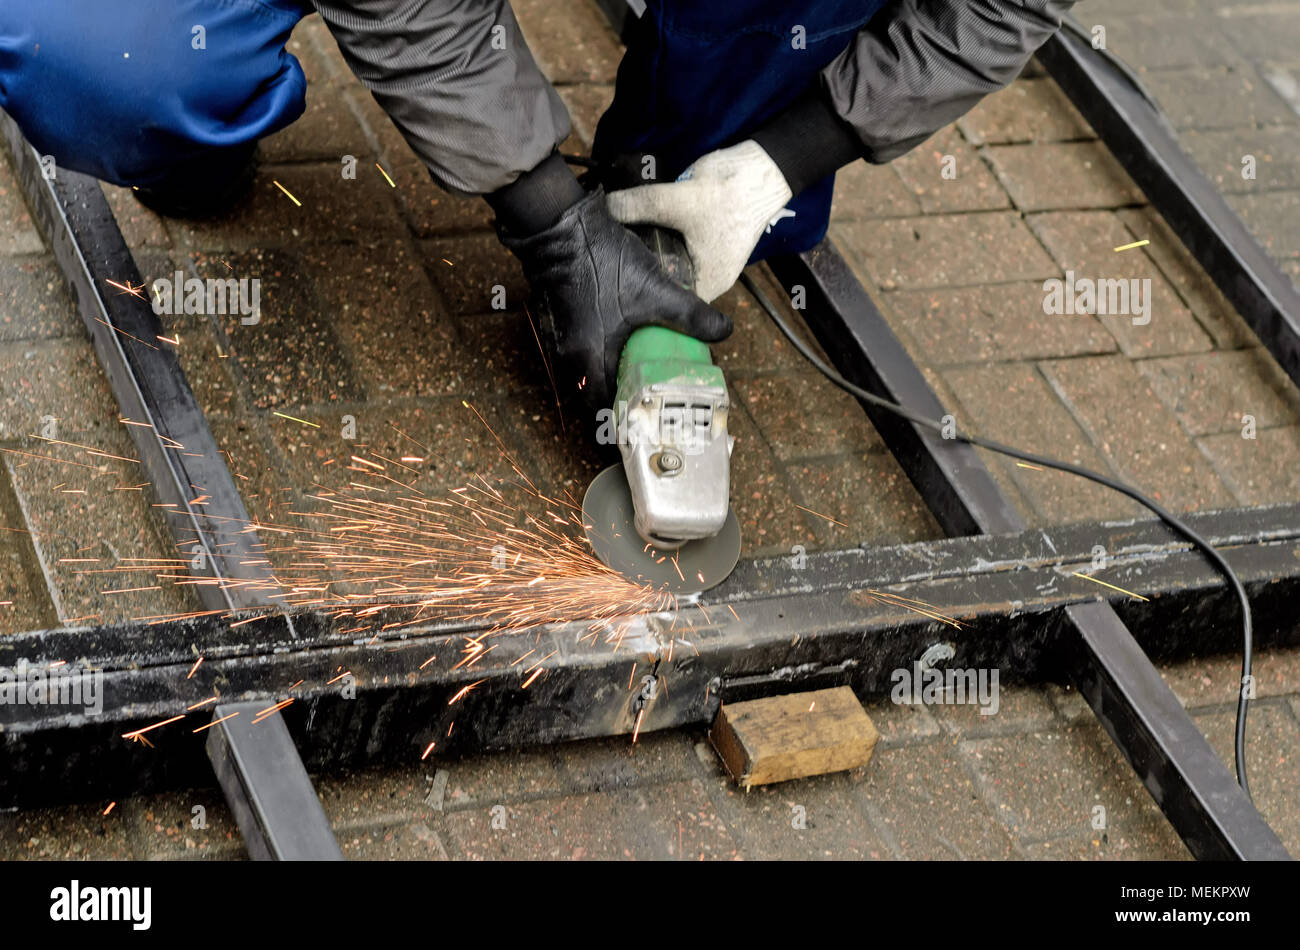 worker in gloves cleans the angle grinder metal construction. - Stock Image